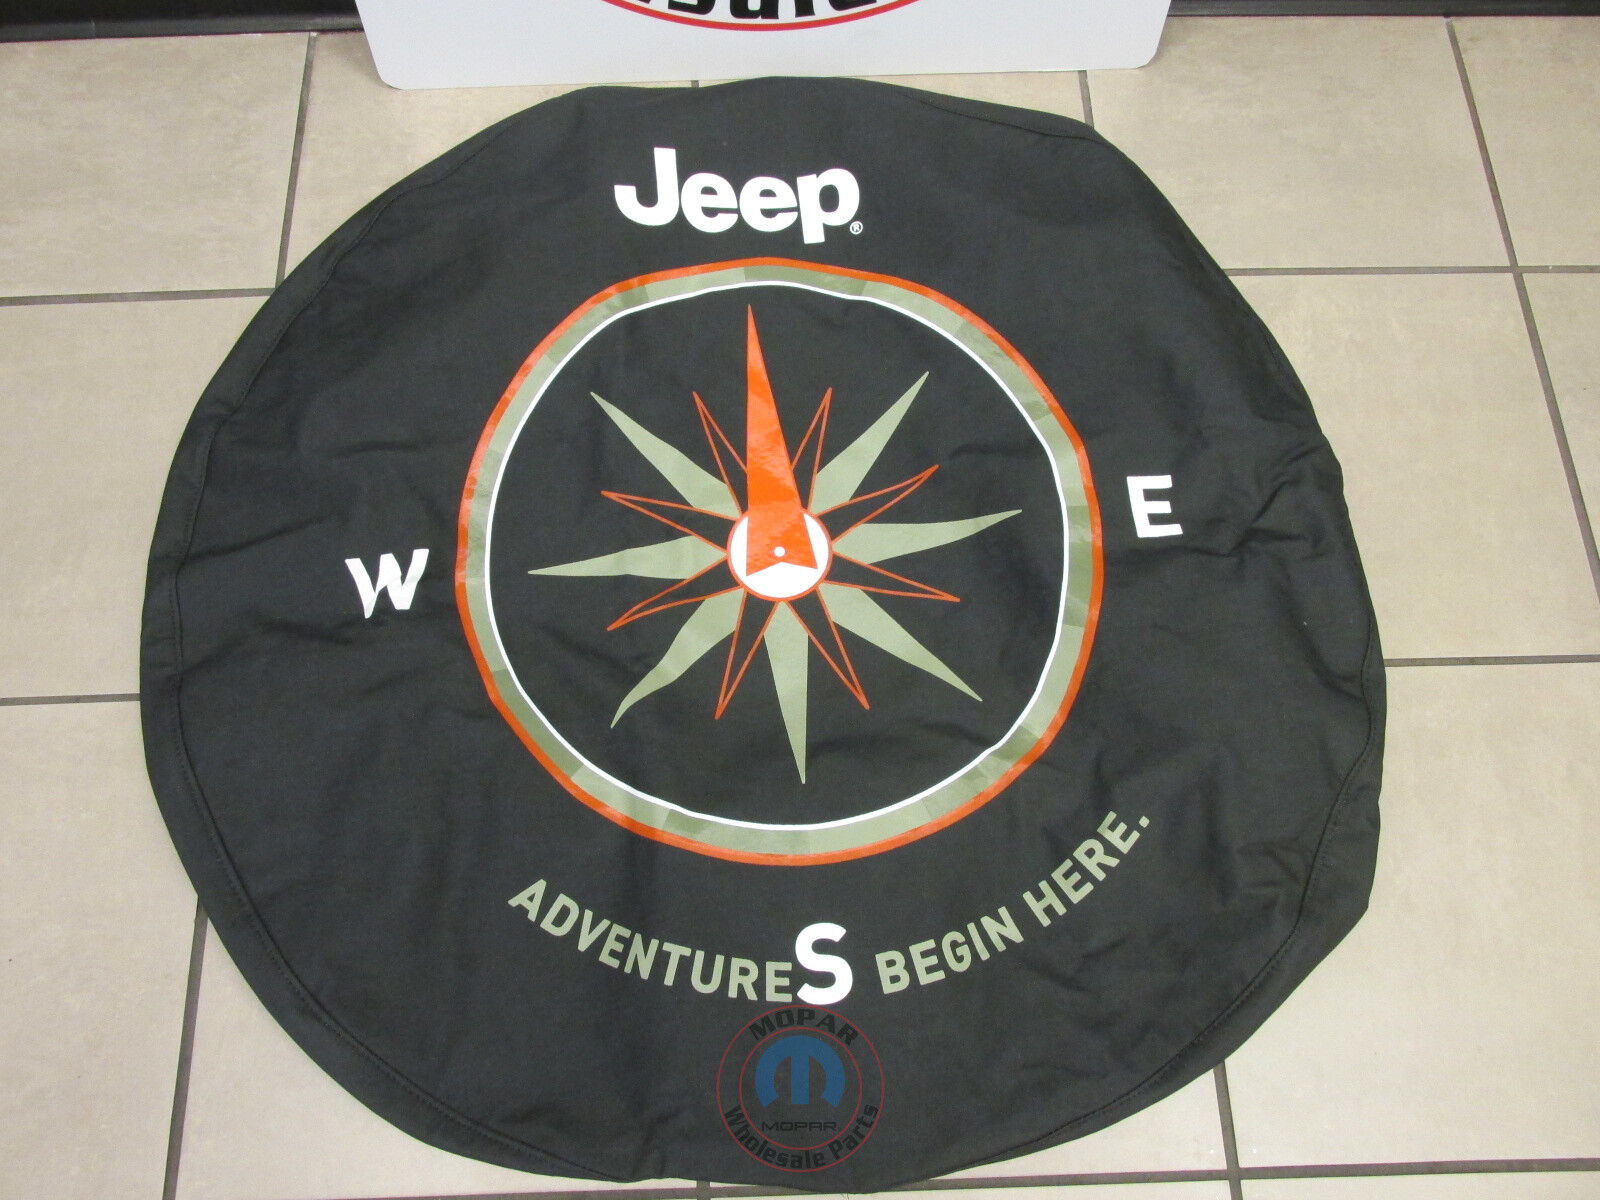 Genuine Jeep Accessories 82210884AB Cloth Spare Tire Cover with The Adventure Begins Here Logo